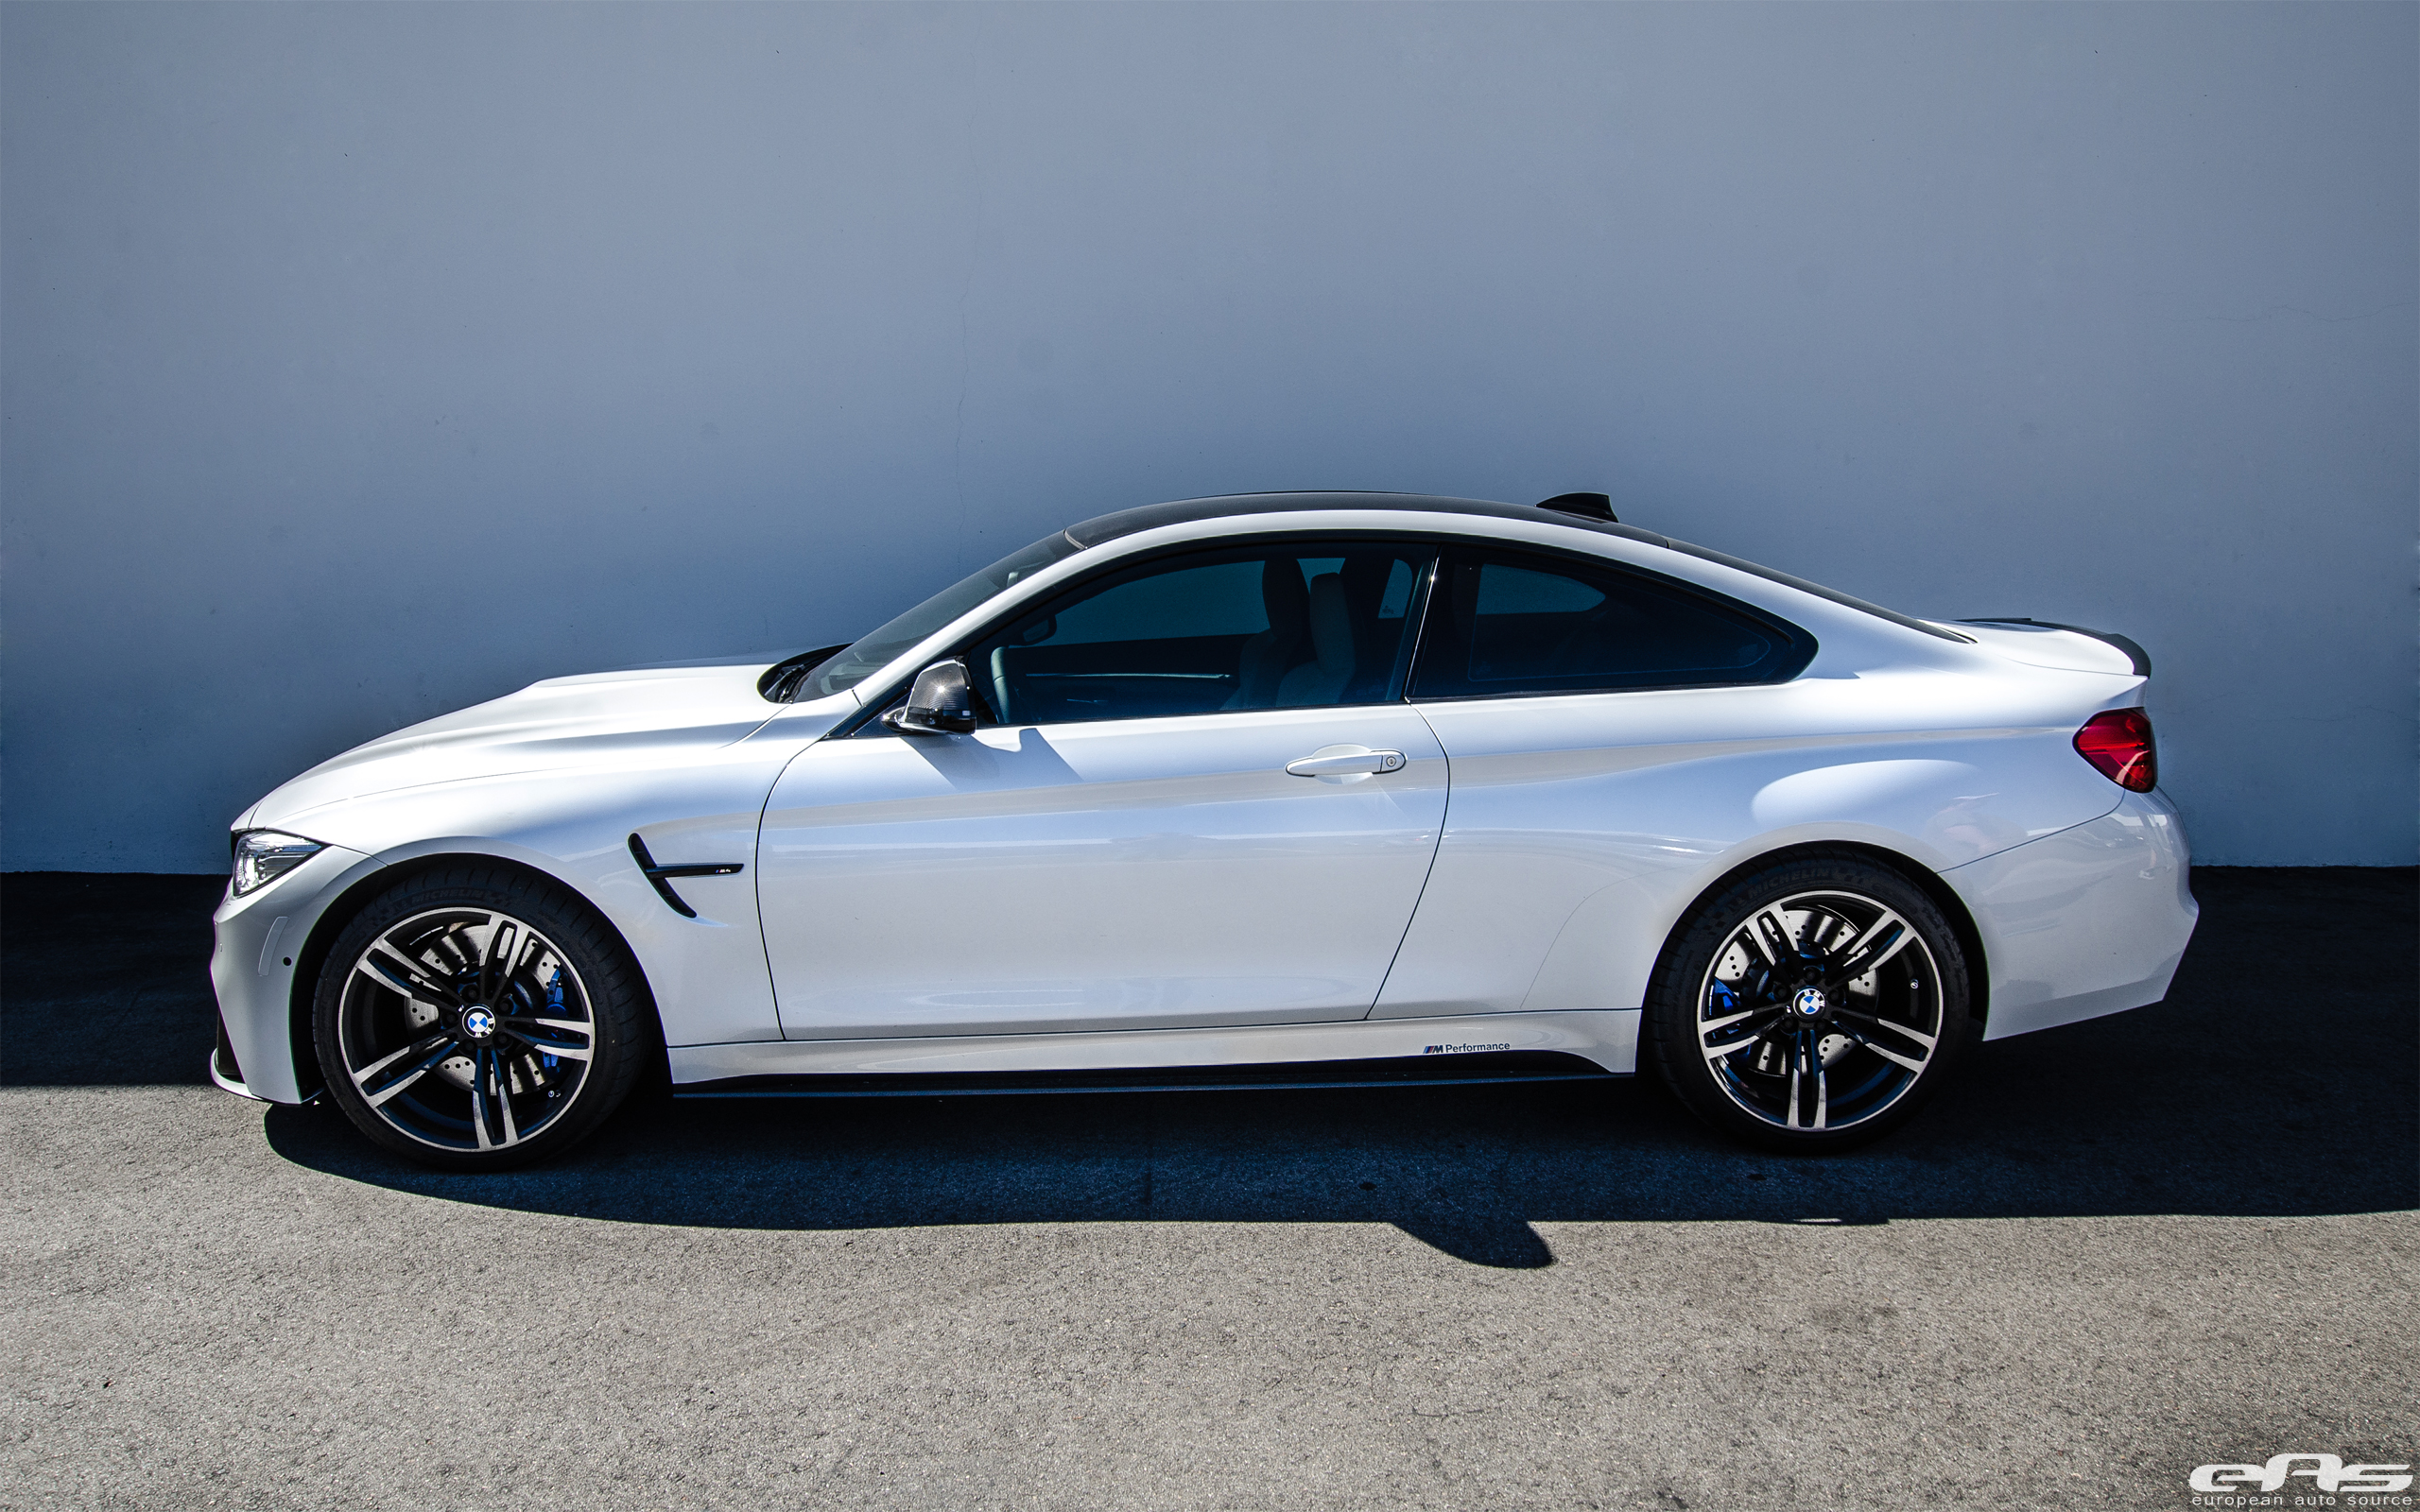 bmw f82 m4 featuring m performance parts by eas. Black Bedroom Furniture Sets. Home Design Ideas